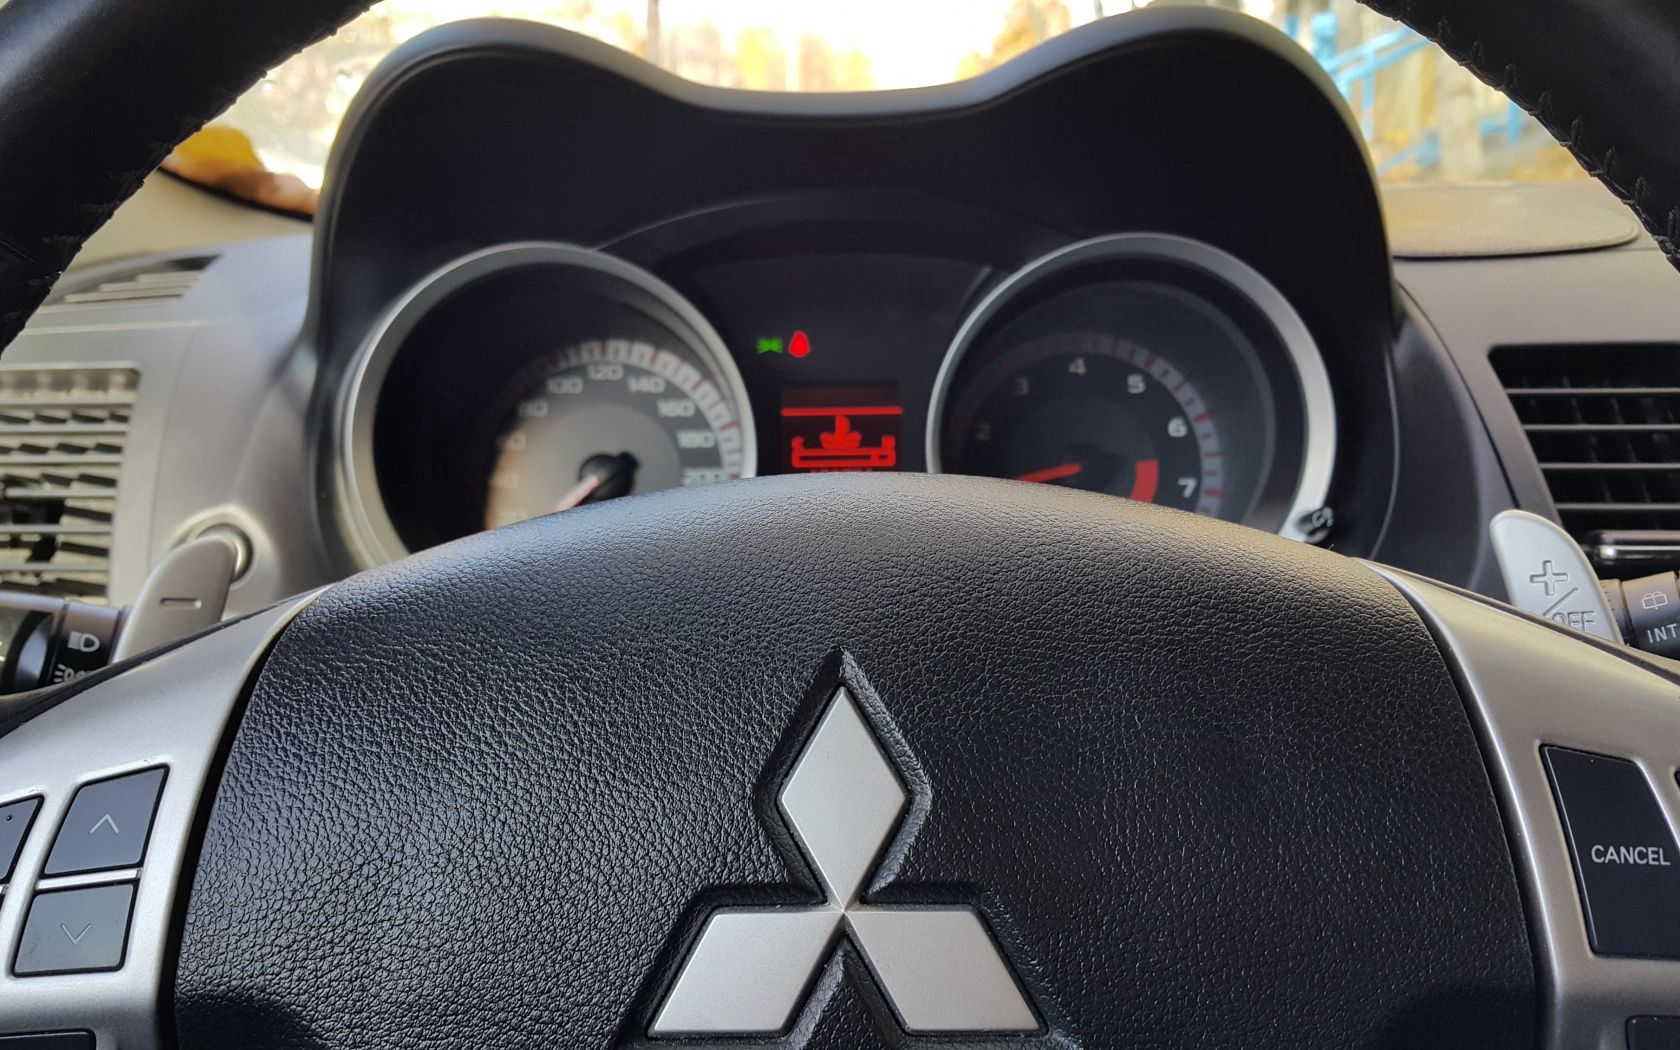 155329 download wallpaper Cars, Mitsubishi, Steering Wheel, Rudder, Logo, Logotype screensavers and pictures for free